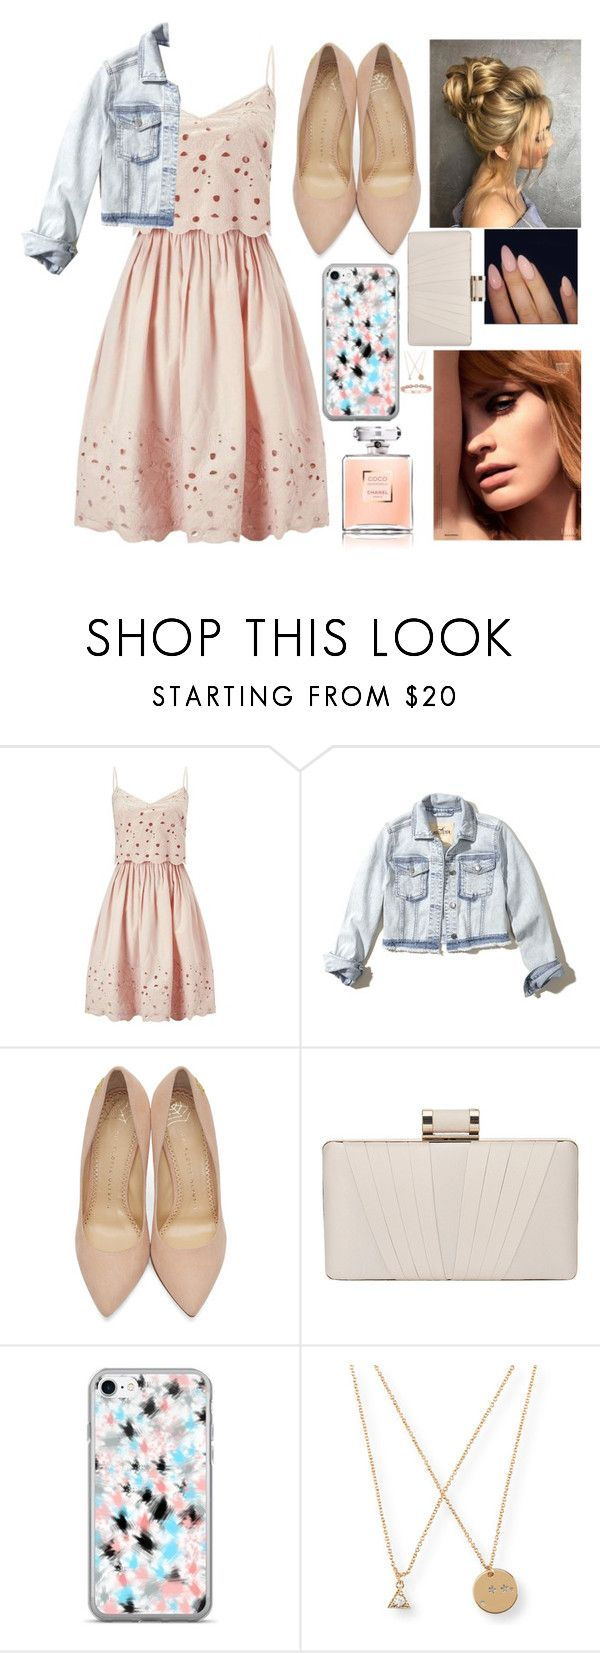 """the girl next door style"" by danifashionblog ❤ liked on Polyvore featuring Miss Selfridge, Hollister Co., Charlotte Olympia, Phase Eight and Aéropostale"